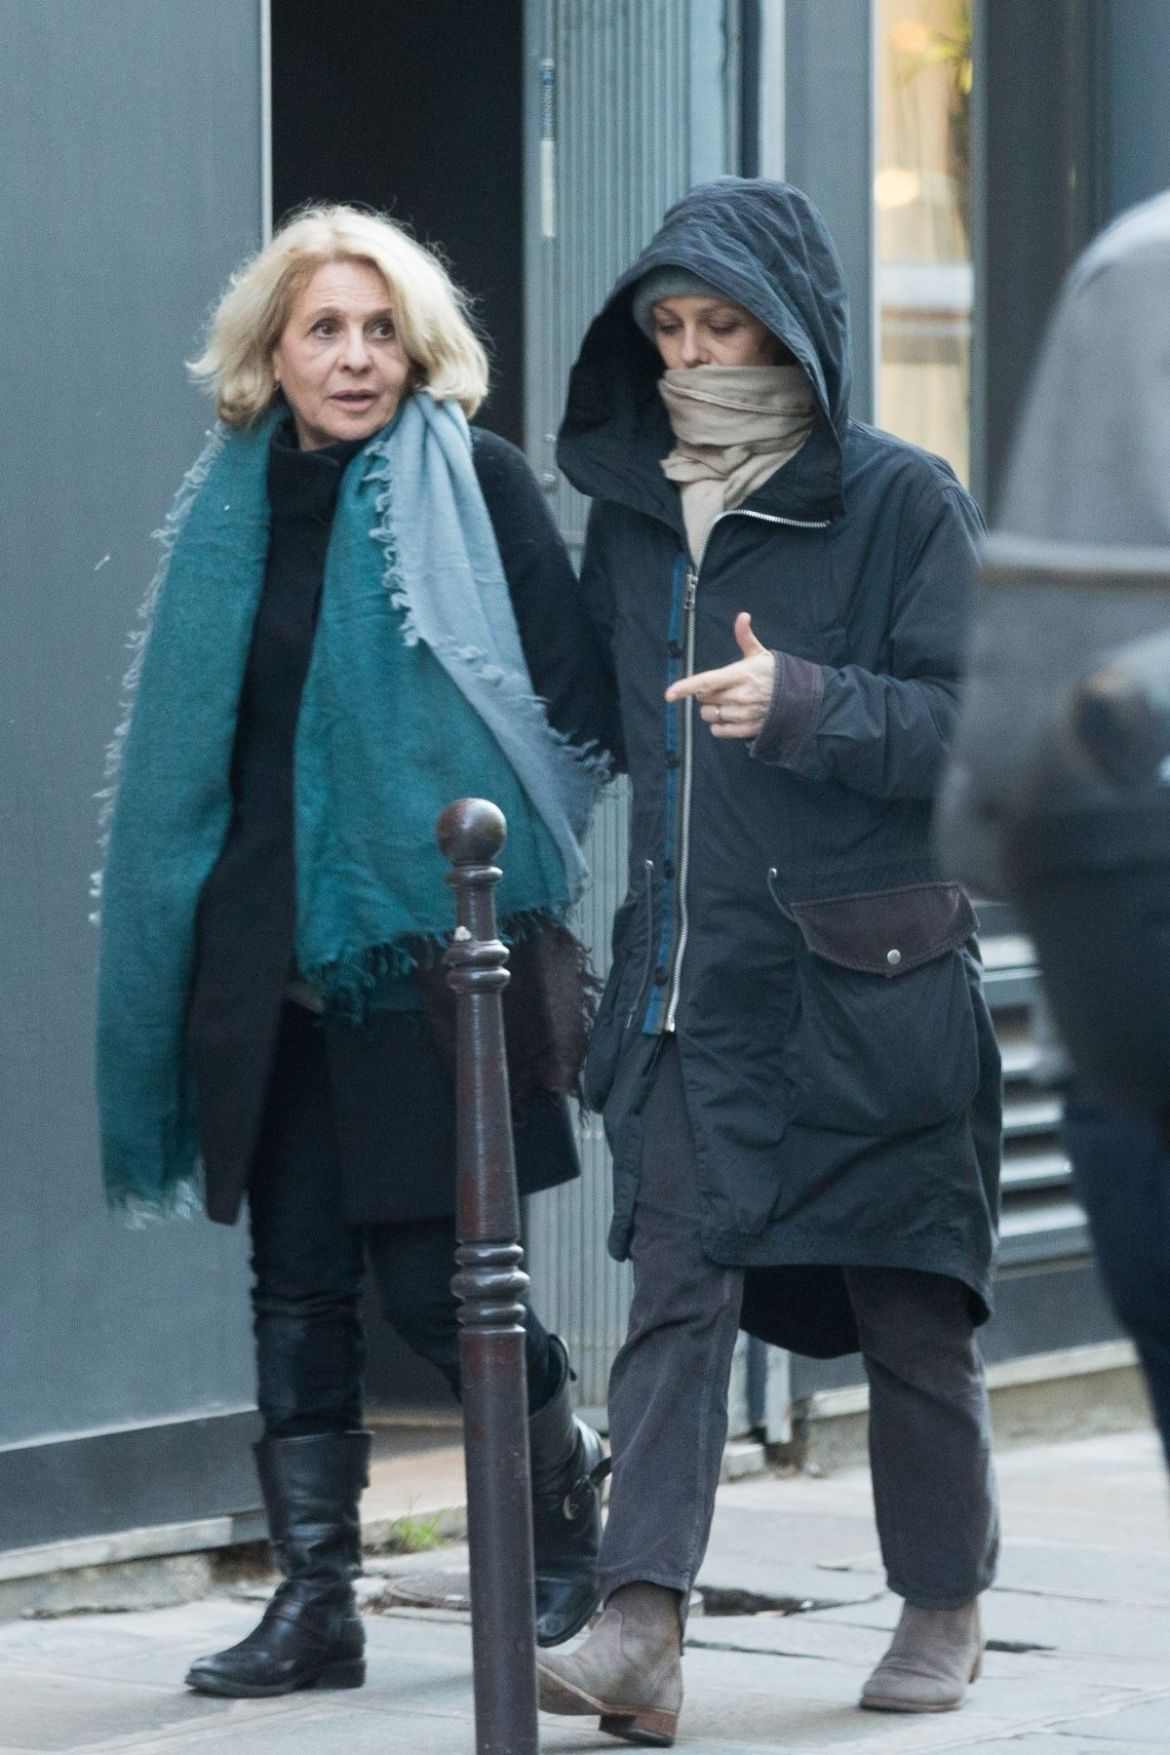 Lily-Rose Depp Walks with her mother Vanessa Paradis and her grandmother Corinne Paradis in the streets of Paris